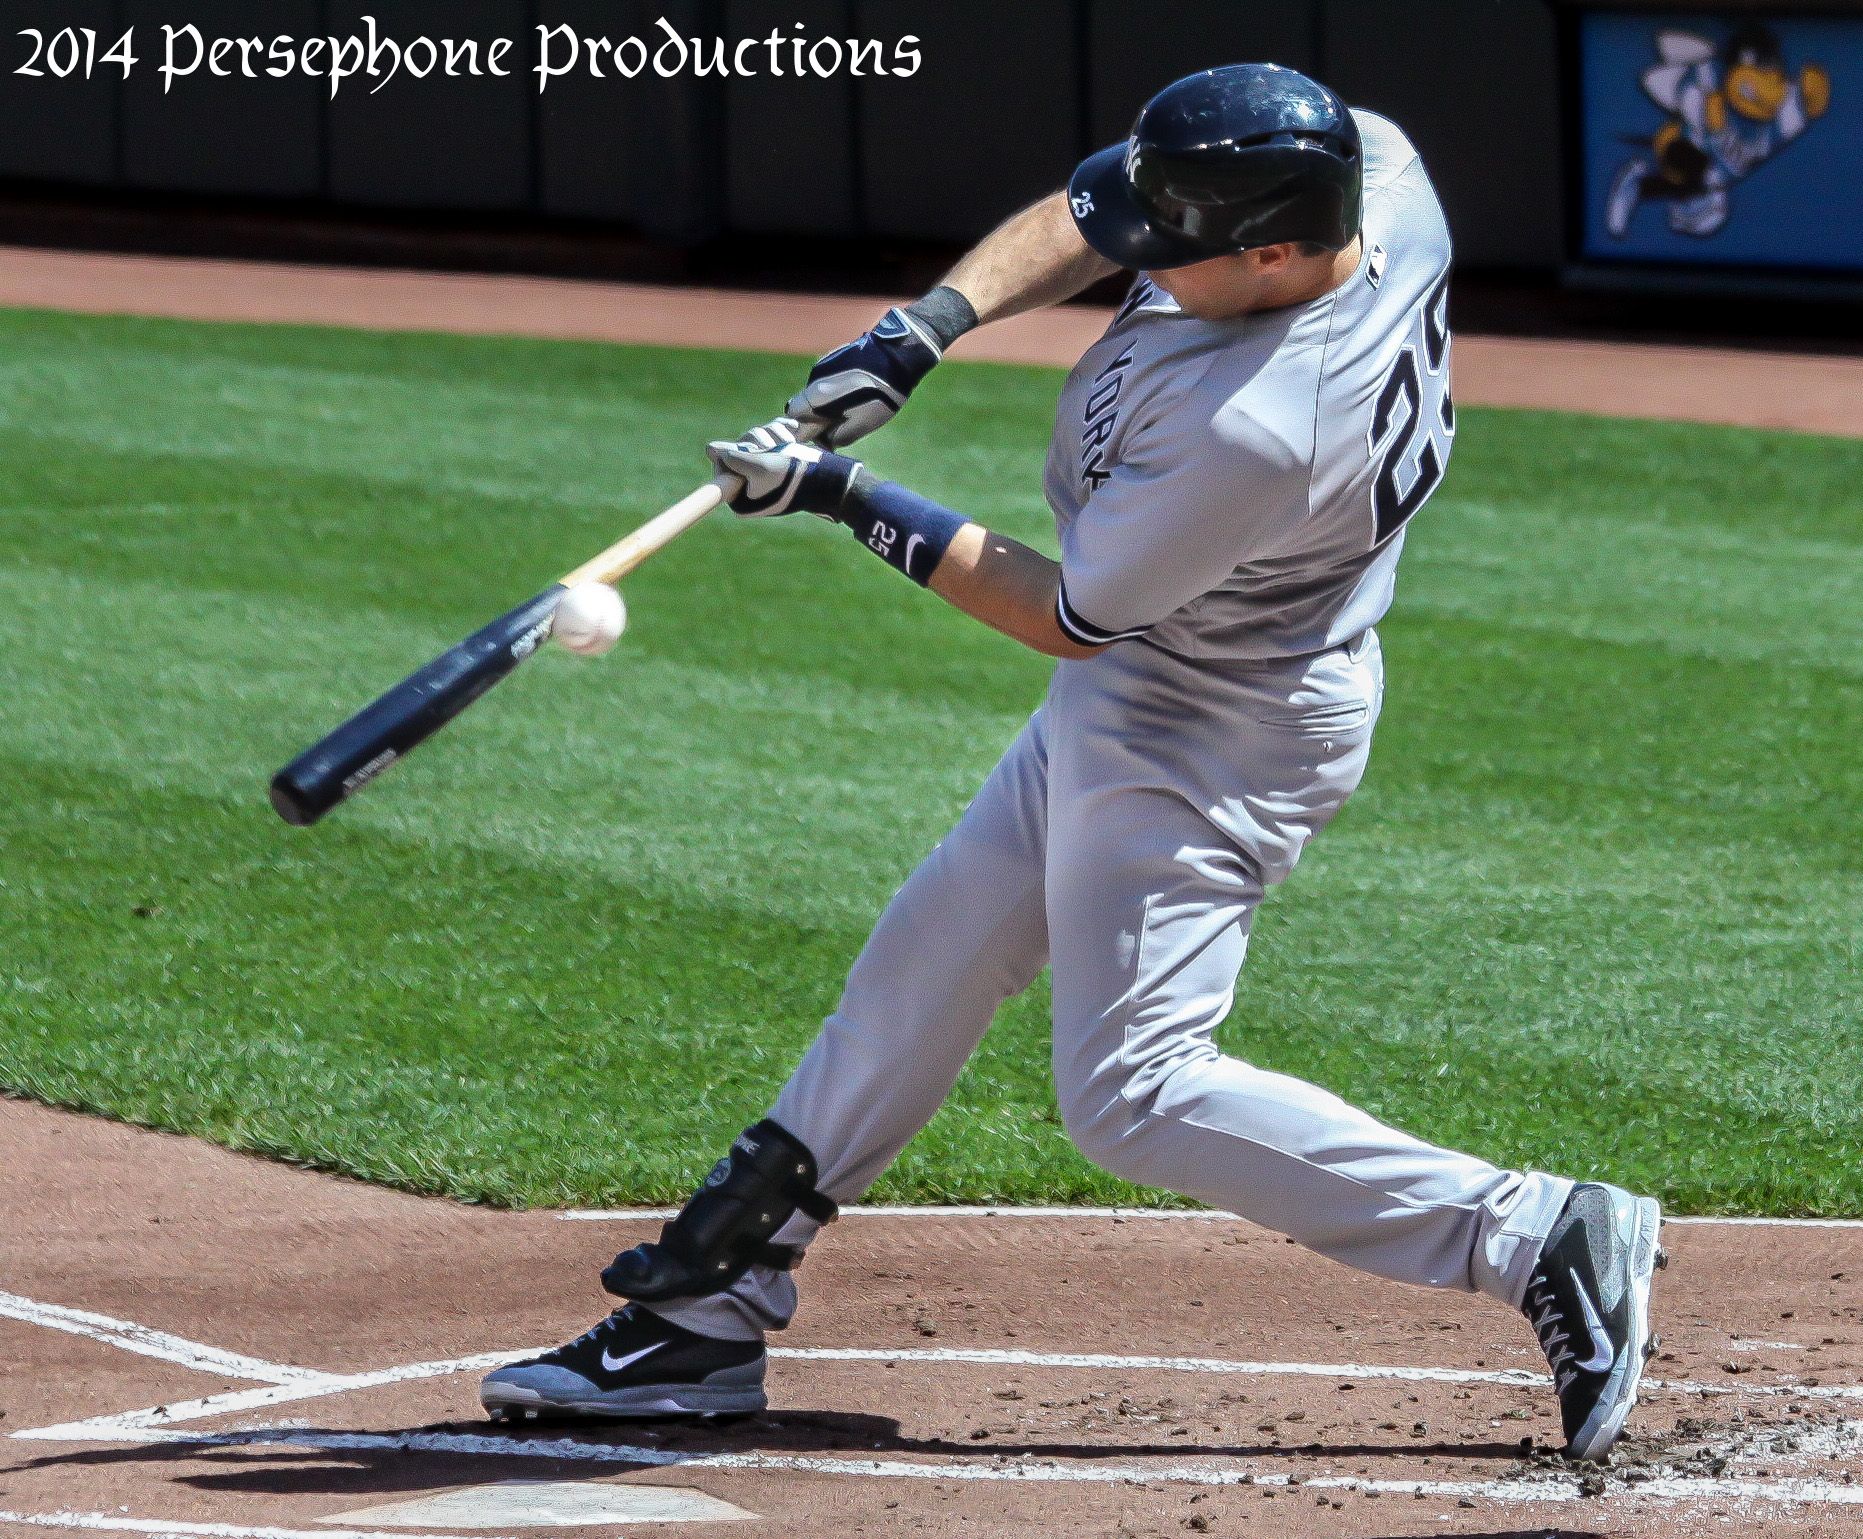 Mark Teixeira, NY Yankees